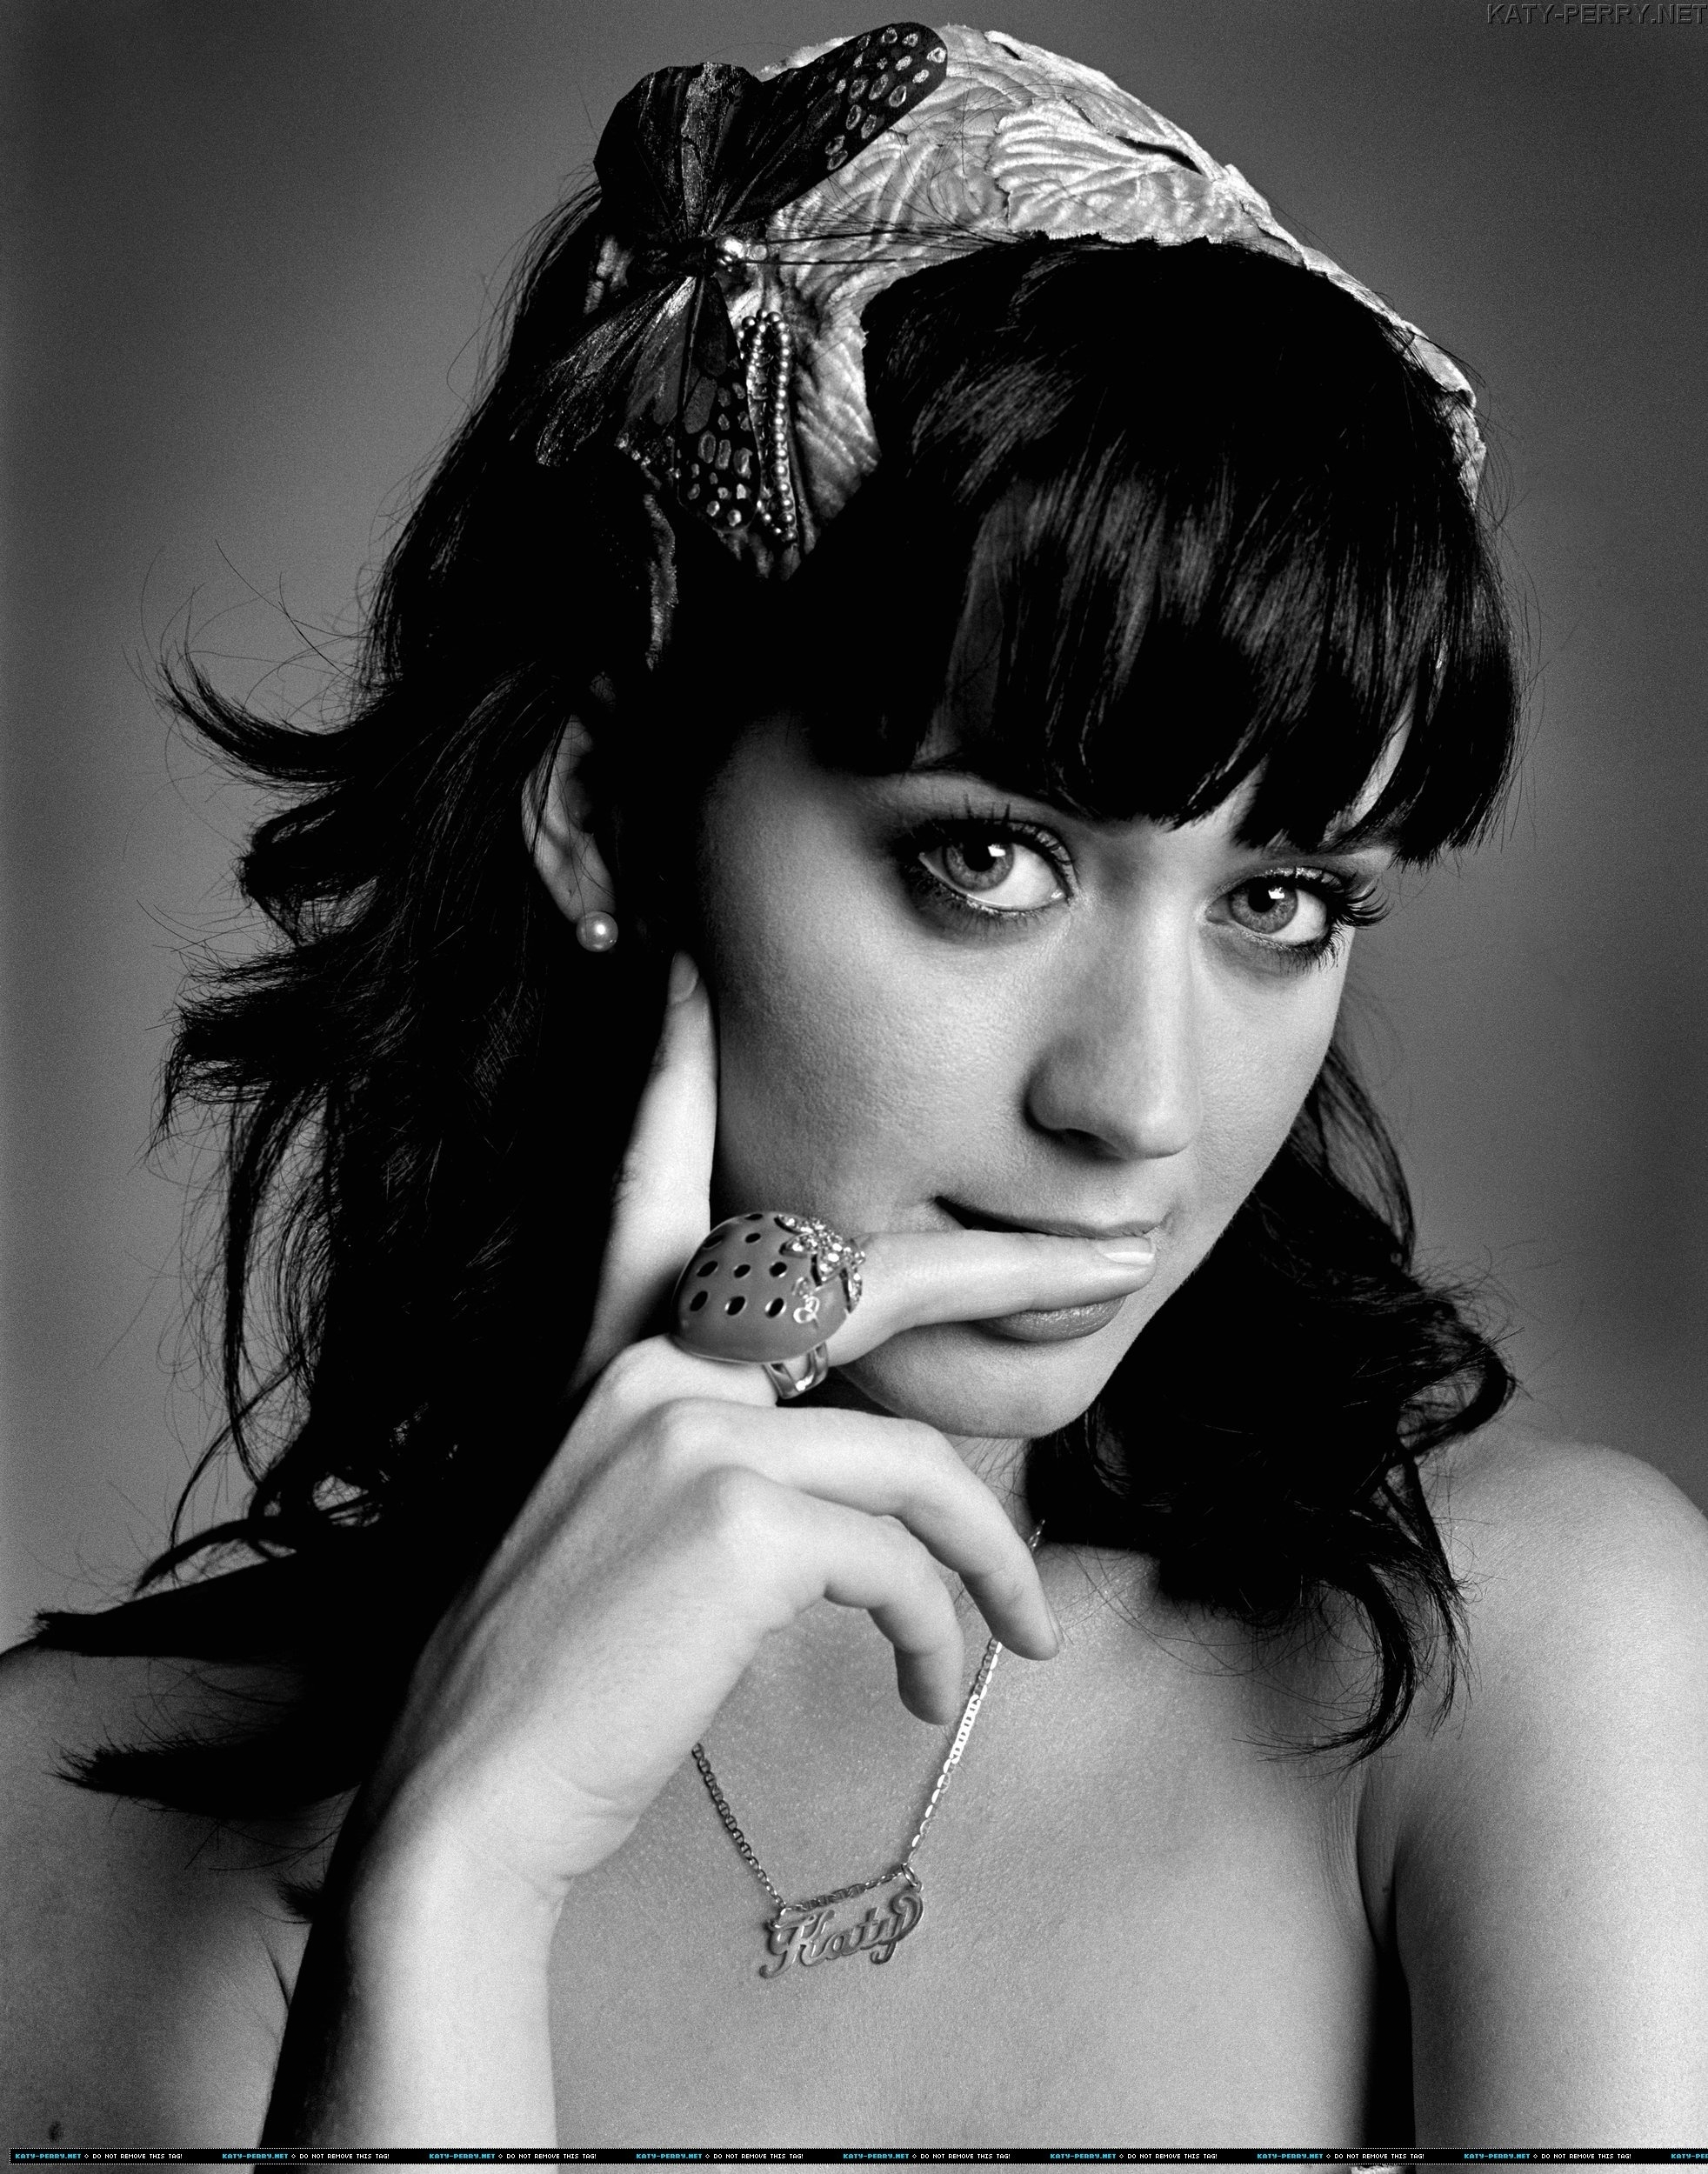 KATY PERRY - KATY PERRY Photo (6419802) - Fanpop